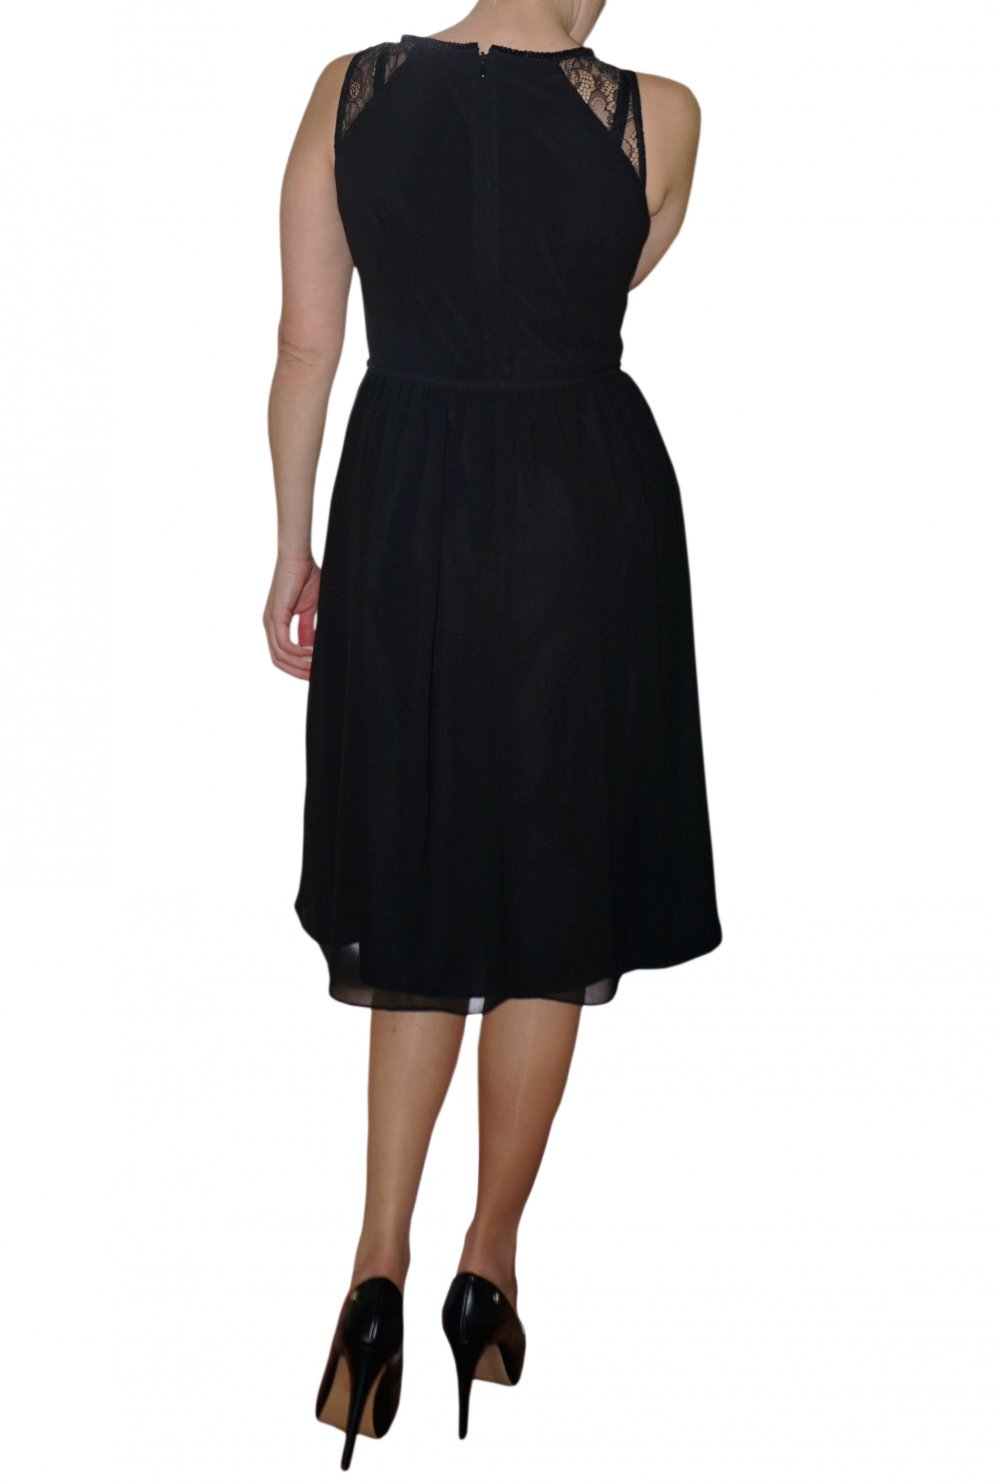 Esprit Kleid Party Sommerkleid Cocktail Abendkleid GR. M 38 ...